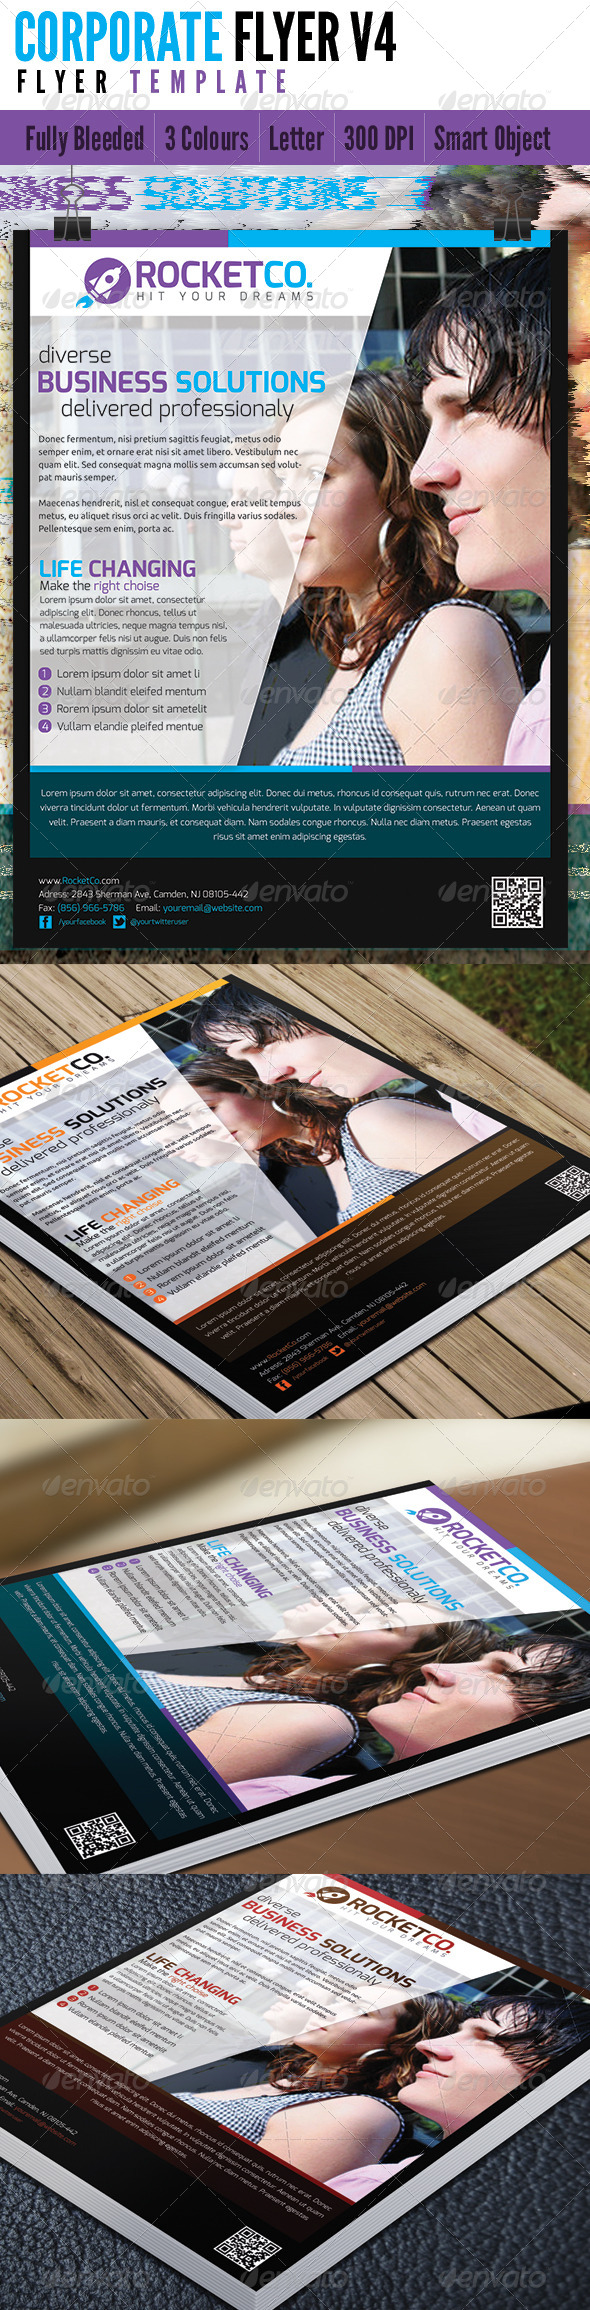 GraphicRiver Corporate Flyer V4 4691777